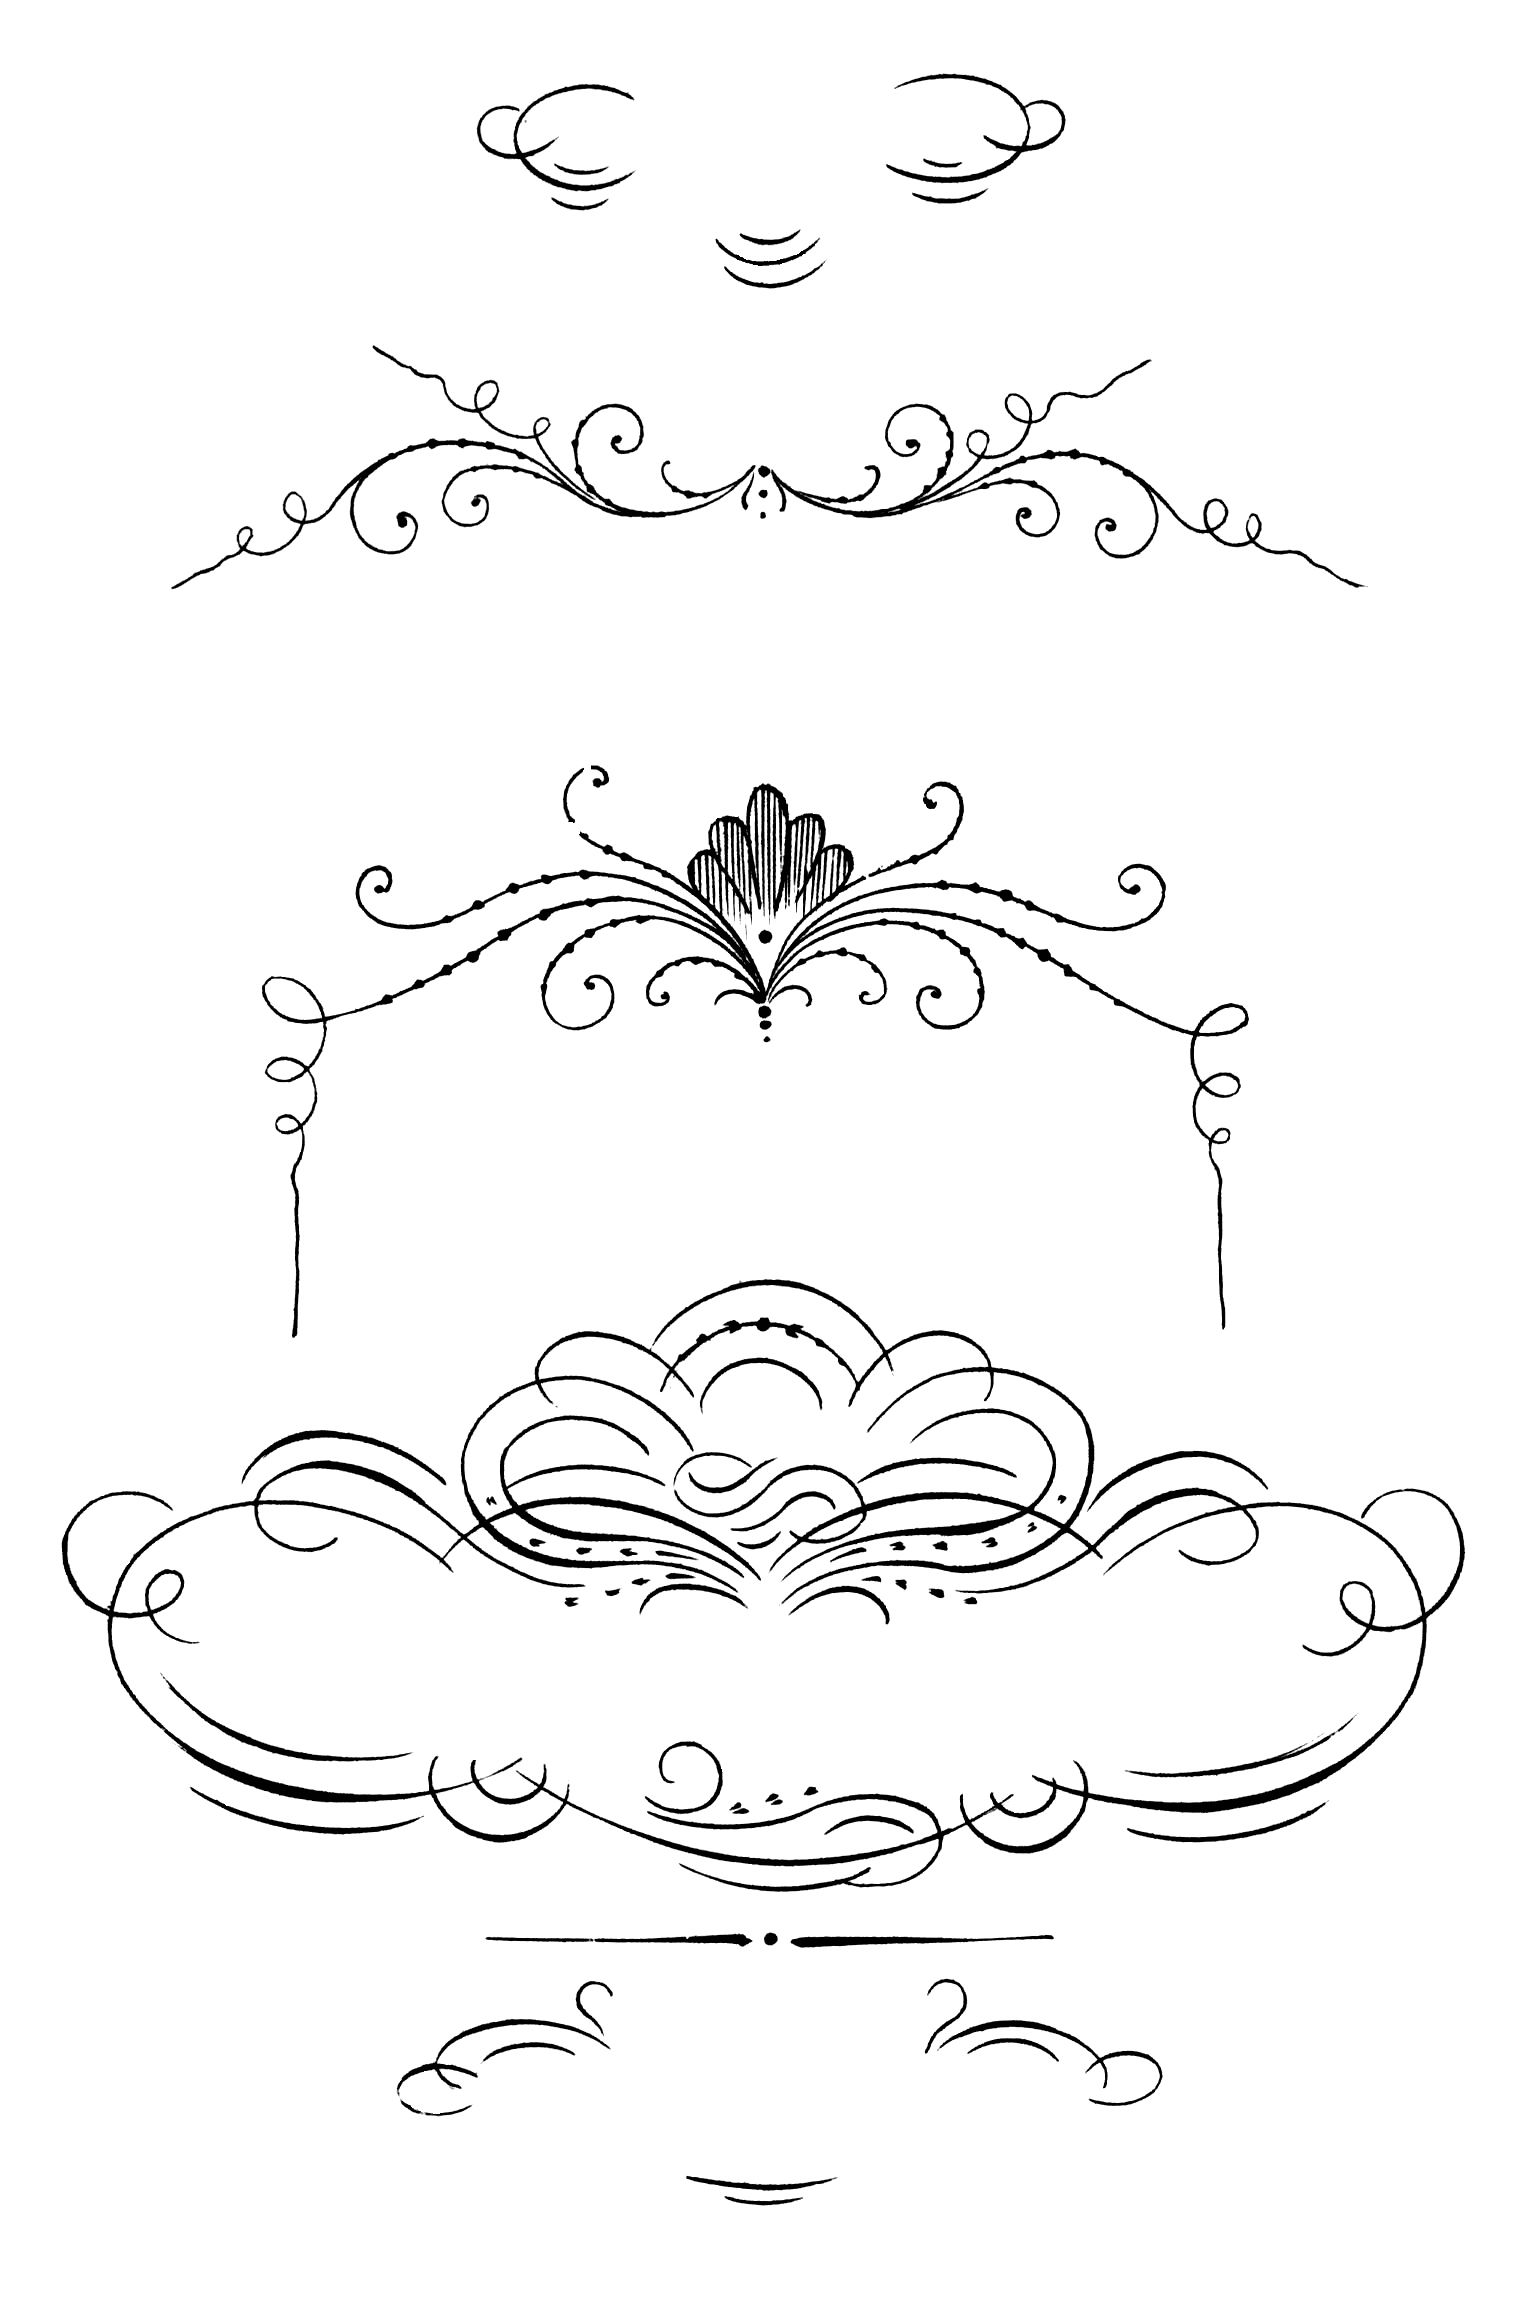 Vgosn Free Calligraphy Ornaments Clipart (Jpeg Image, 1516 2297 Pixels)  Scaled (30%)